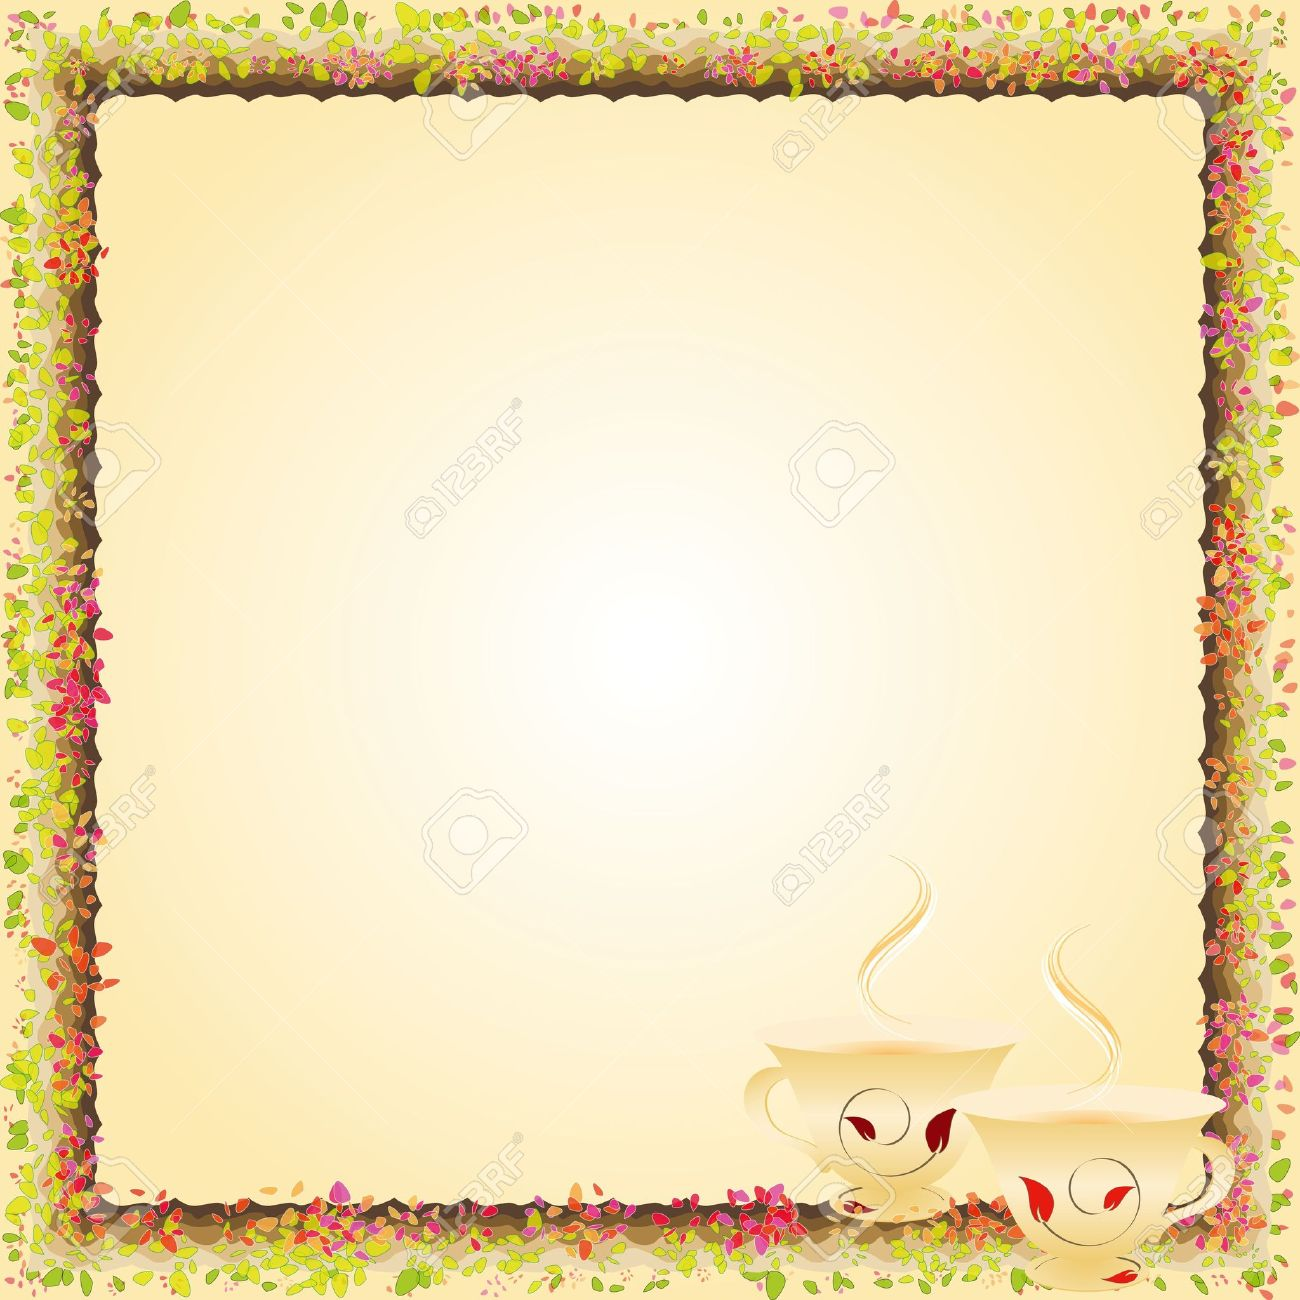 Summer afternoon tea time party invitation Stock Photo - 6895263